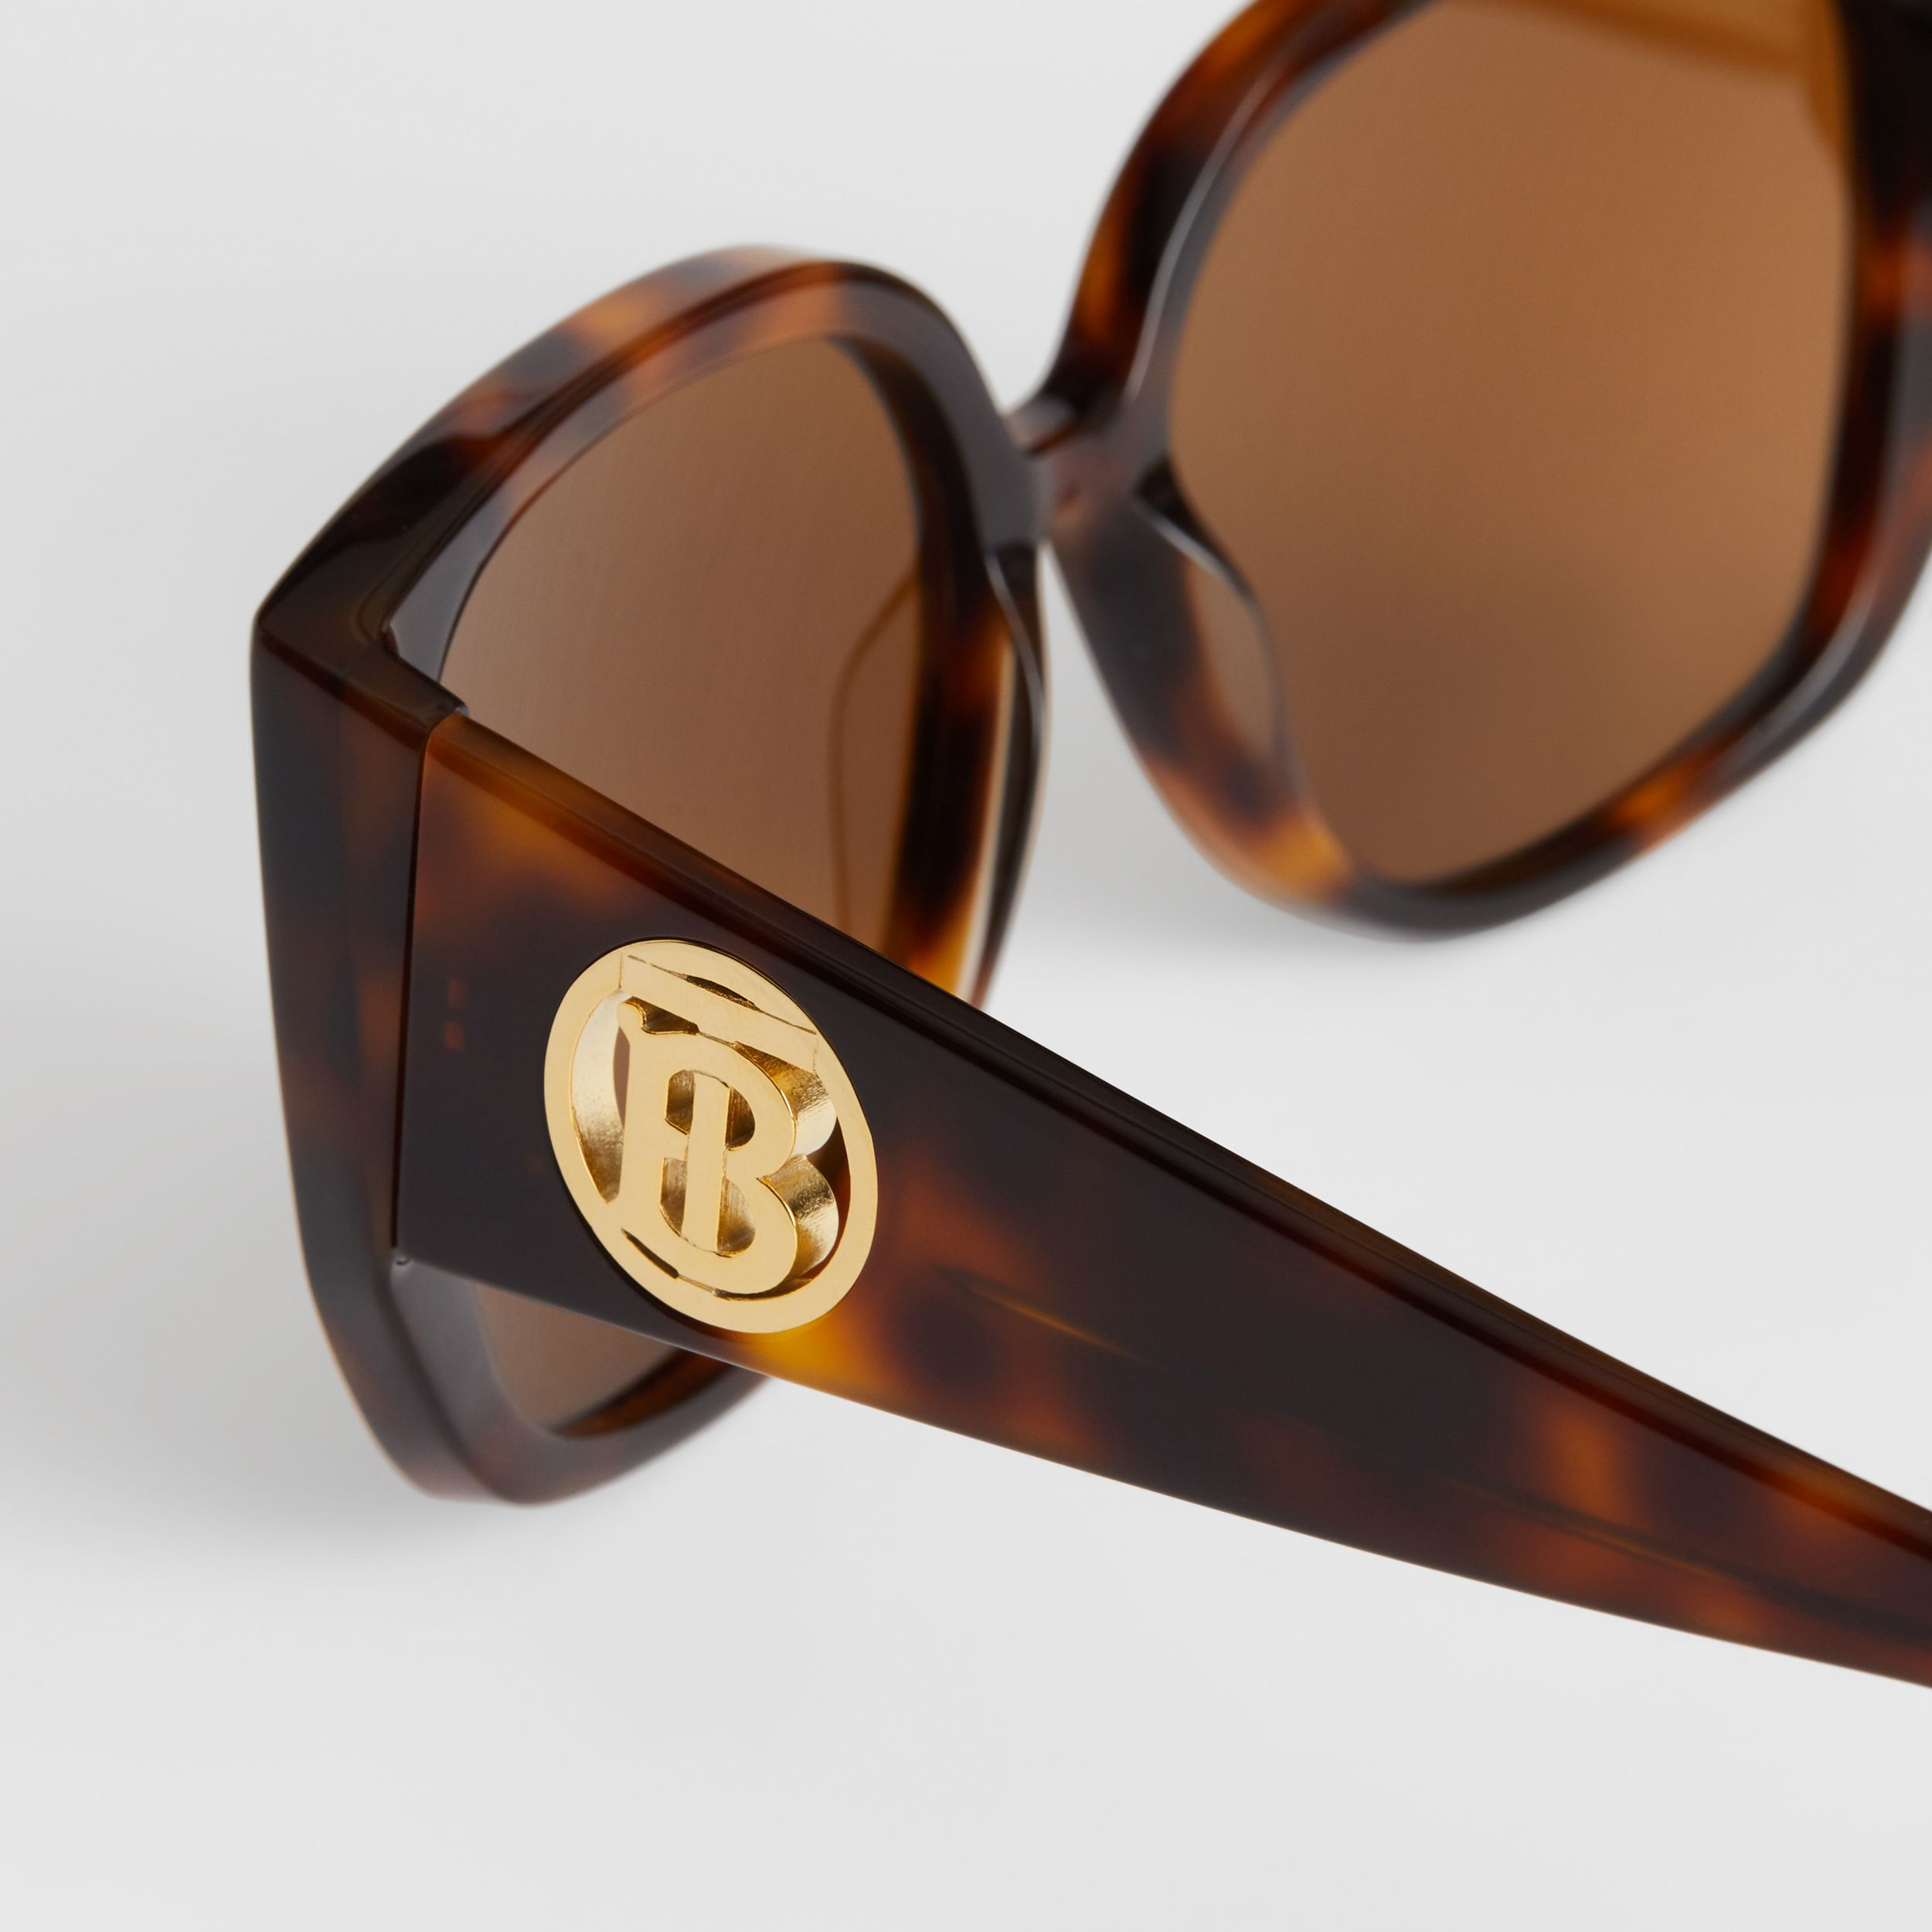 Oversized Butterfly Frame Sunglasses in Tortoiseshell - Women | Burberry United Kingdom - 2